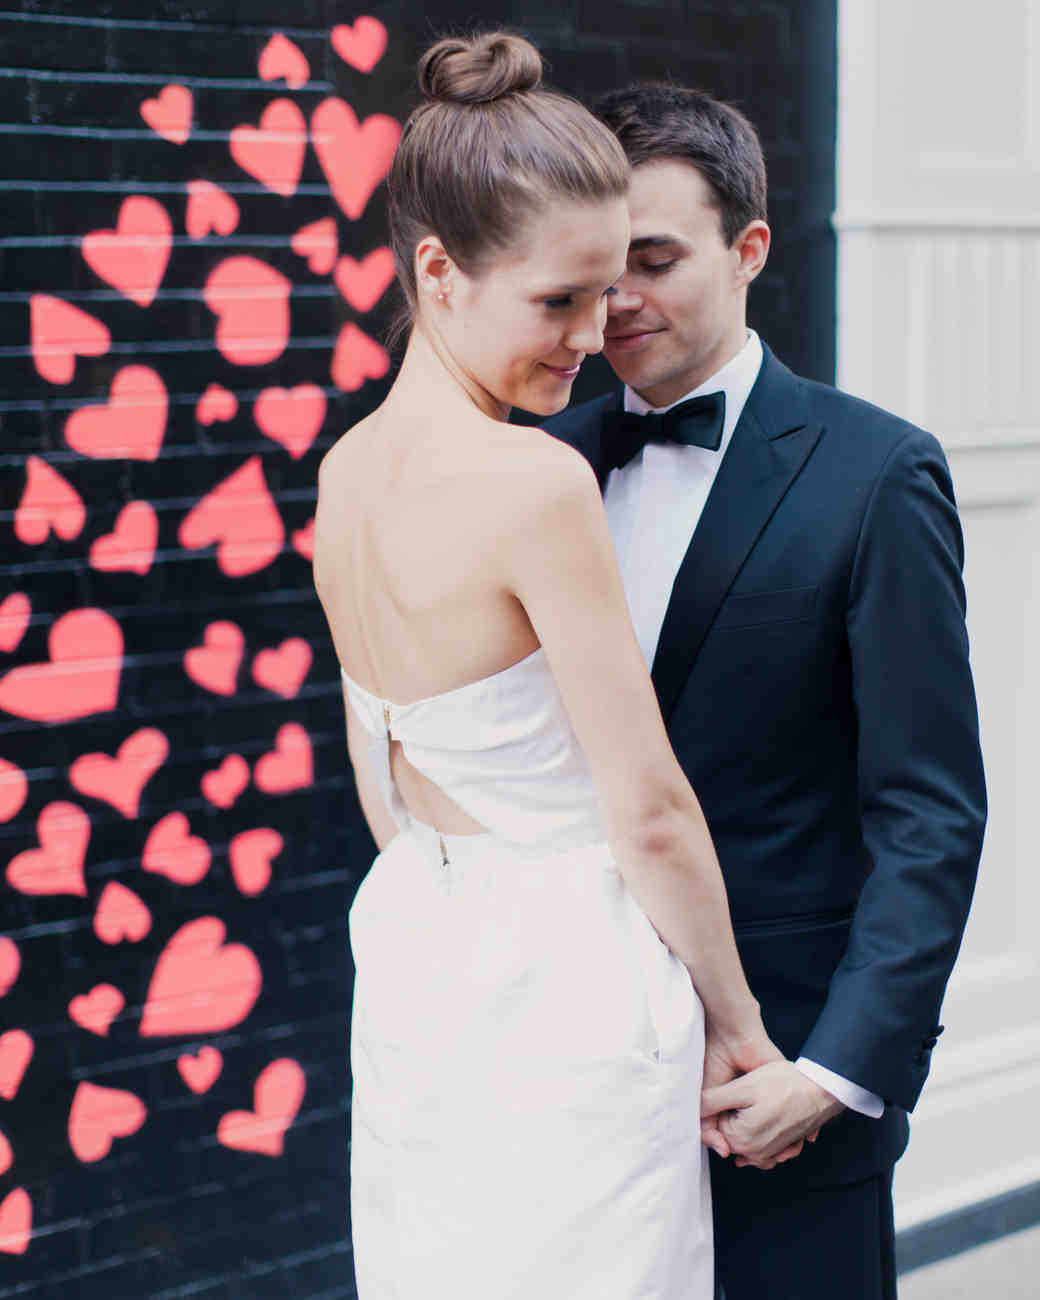 Wedding Portrait with Heart Mural Background